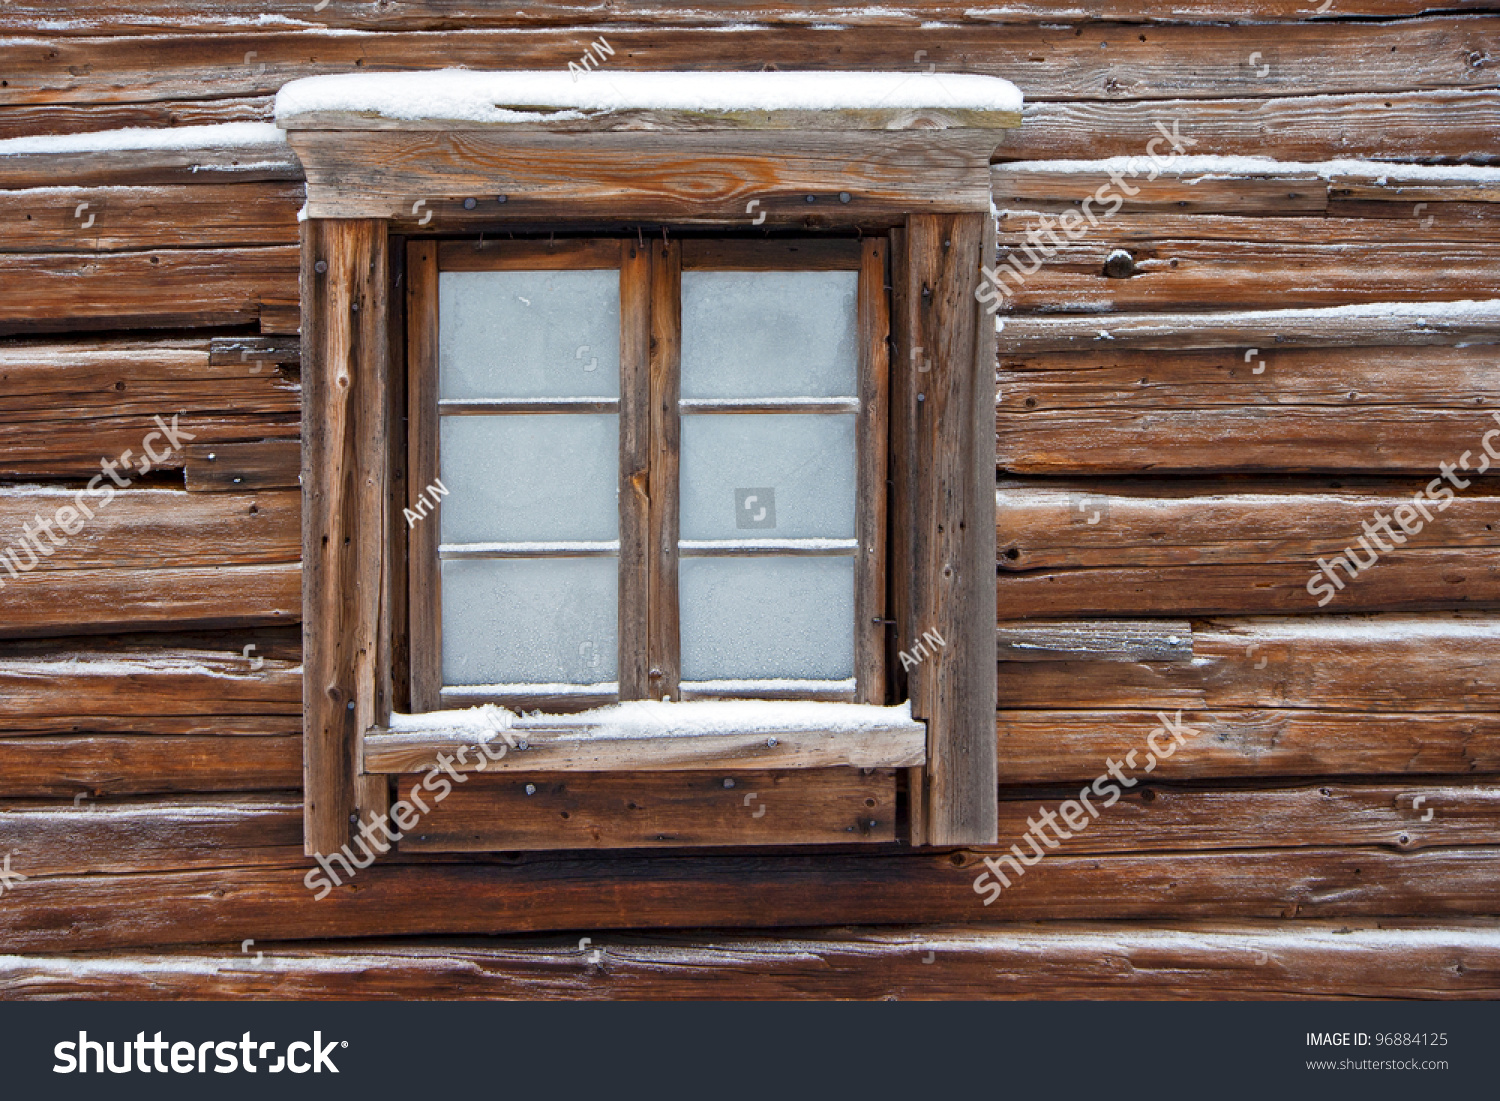 Frozen window old log cabin stock photo 96884125 for Windows for log cabins